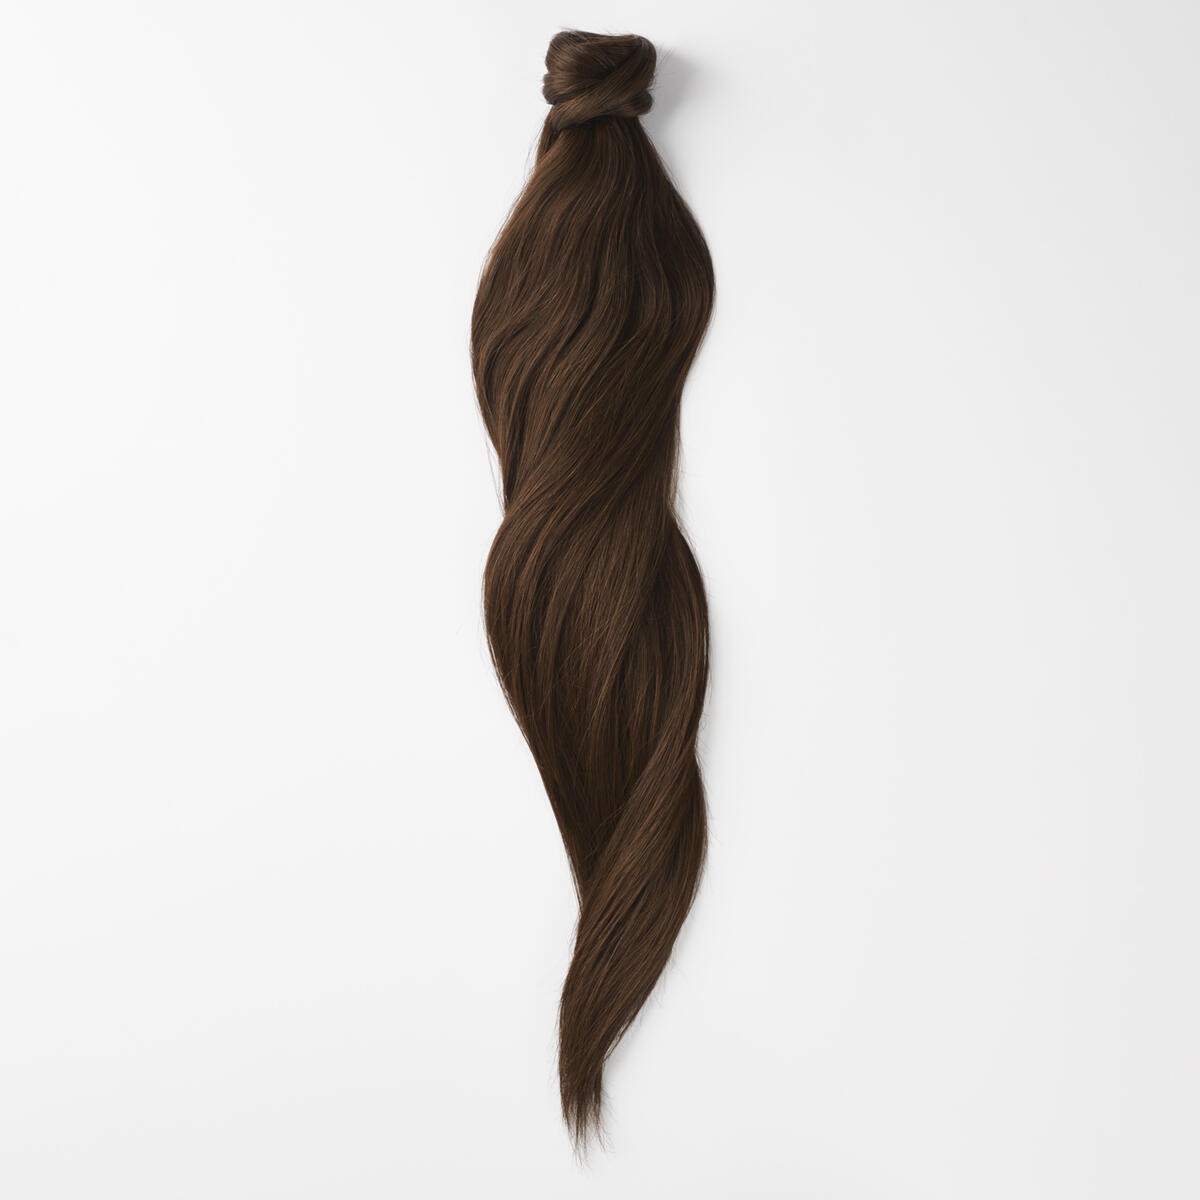 Clip-in Ponytail 2.3 Chocolate Brown 30 cm